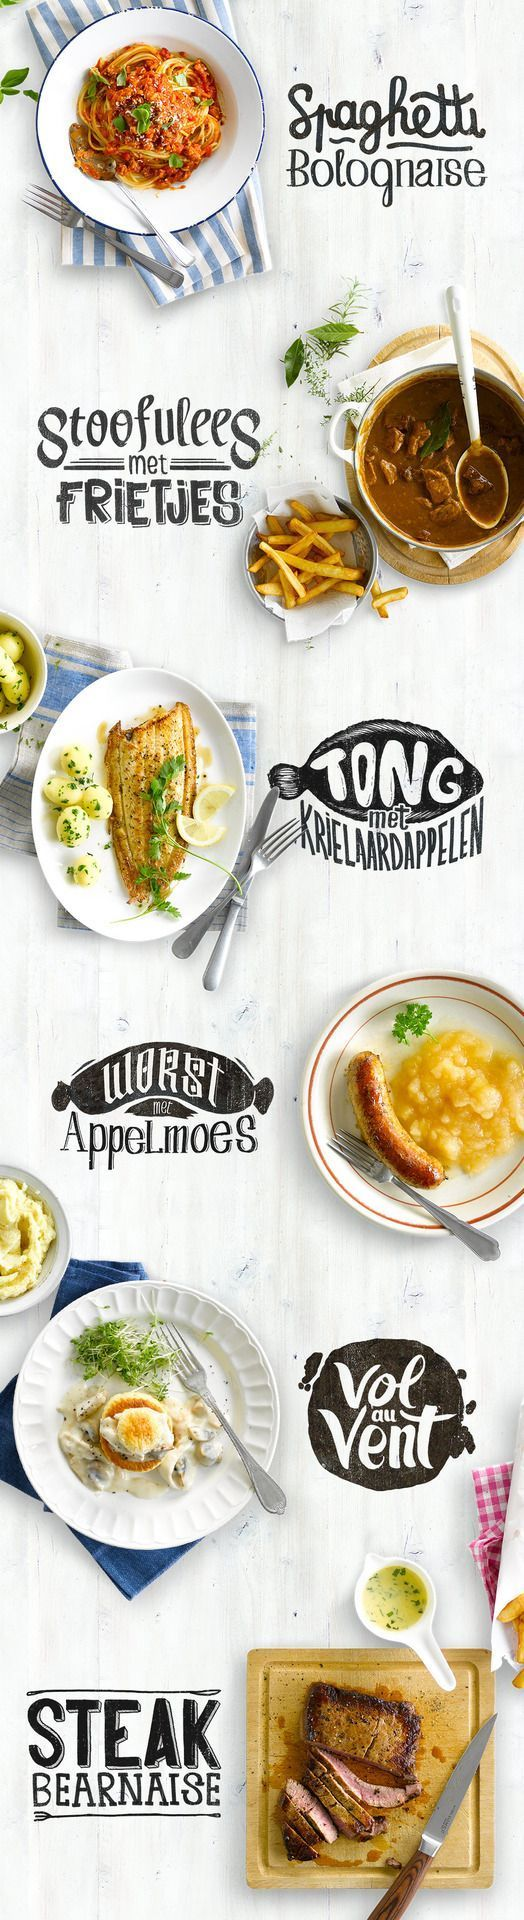 83 best foodie typography images on Pinterest | Graphics, Charts and ...